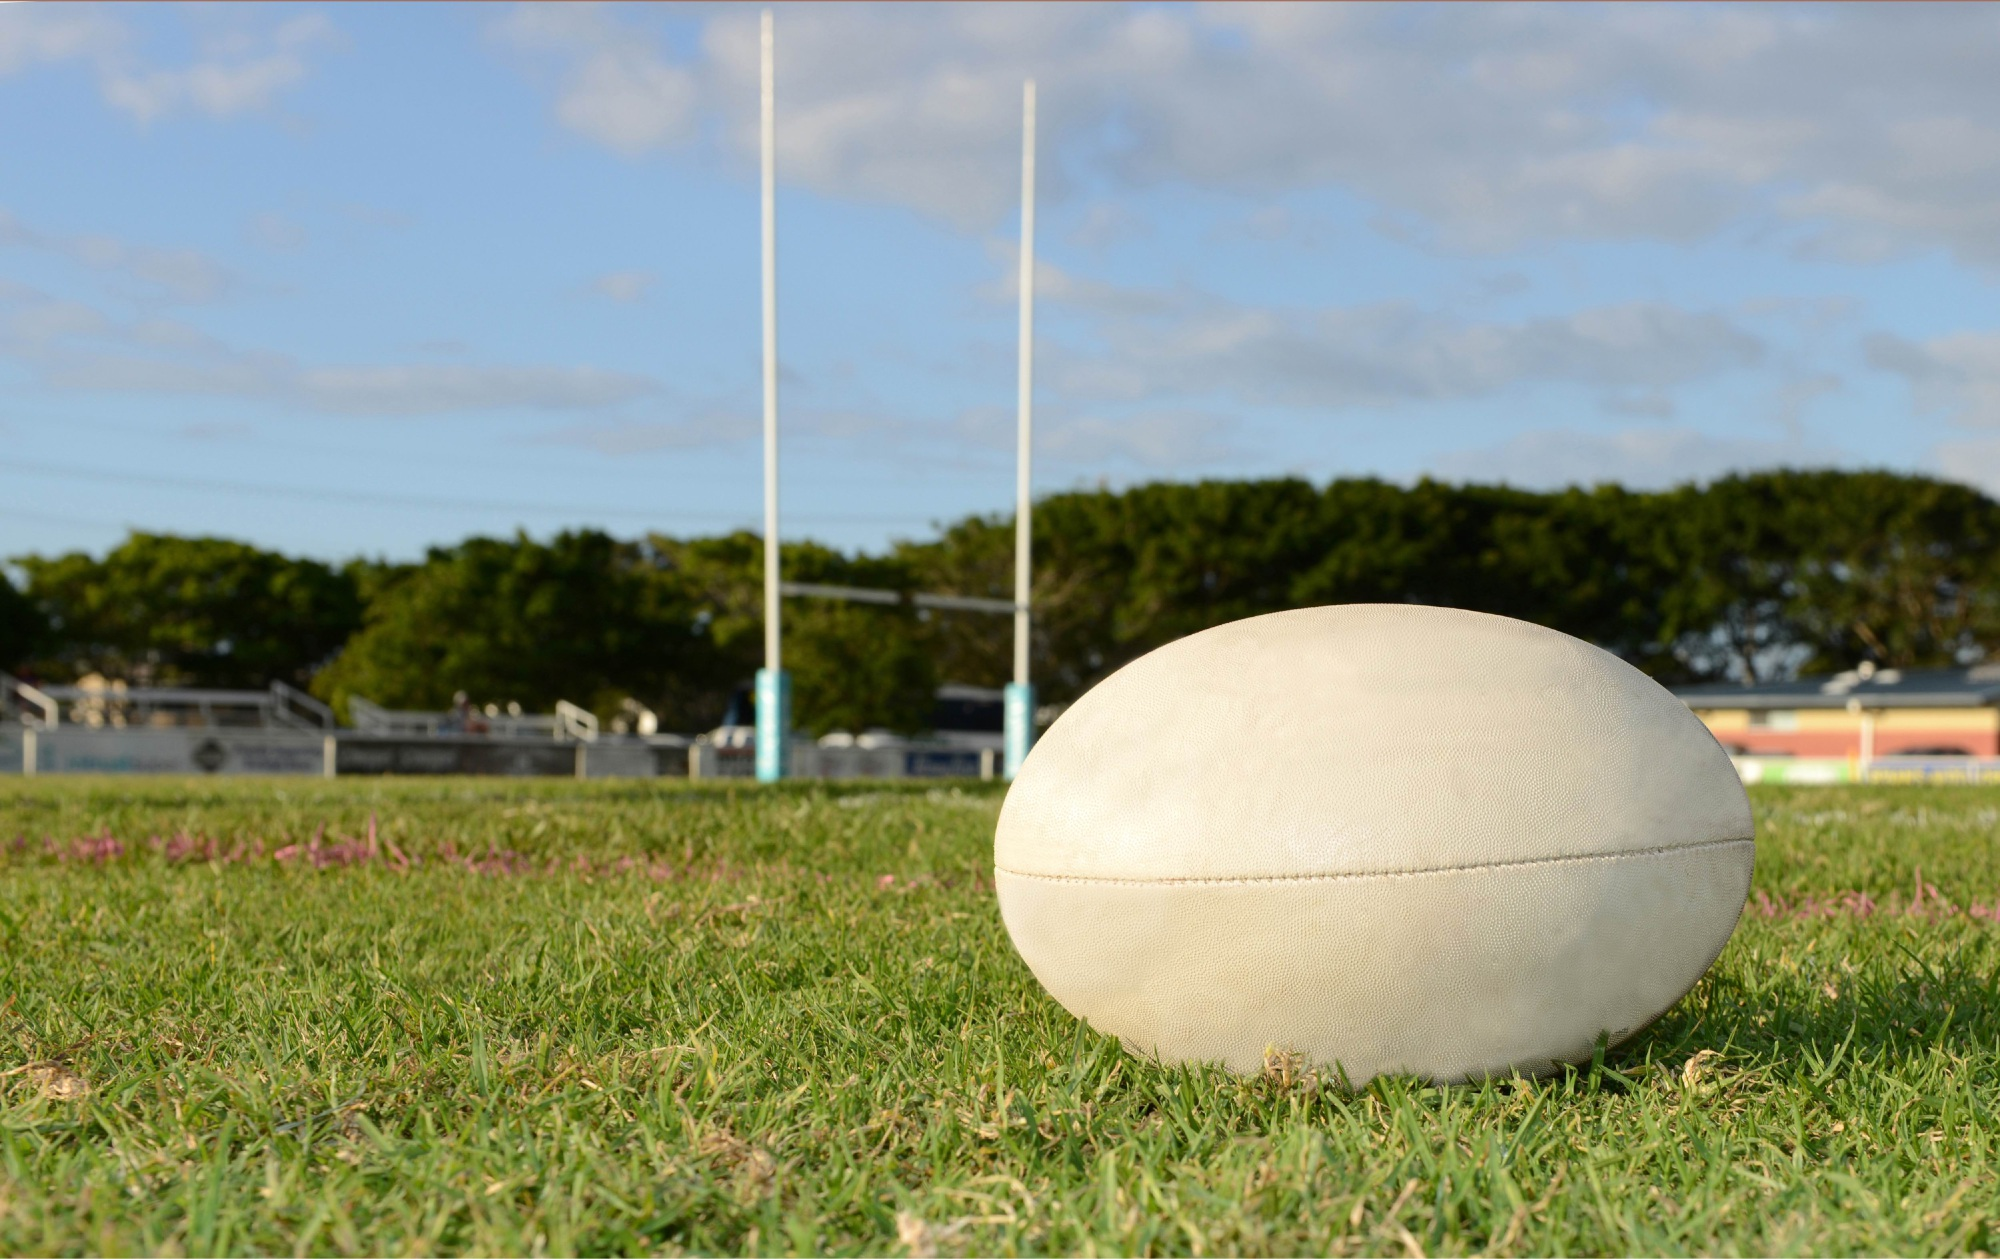 Rugby Union: Perth Bayswater register second win of season with victory over Joondalup